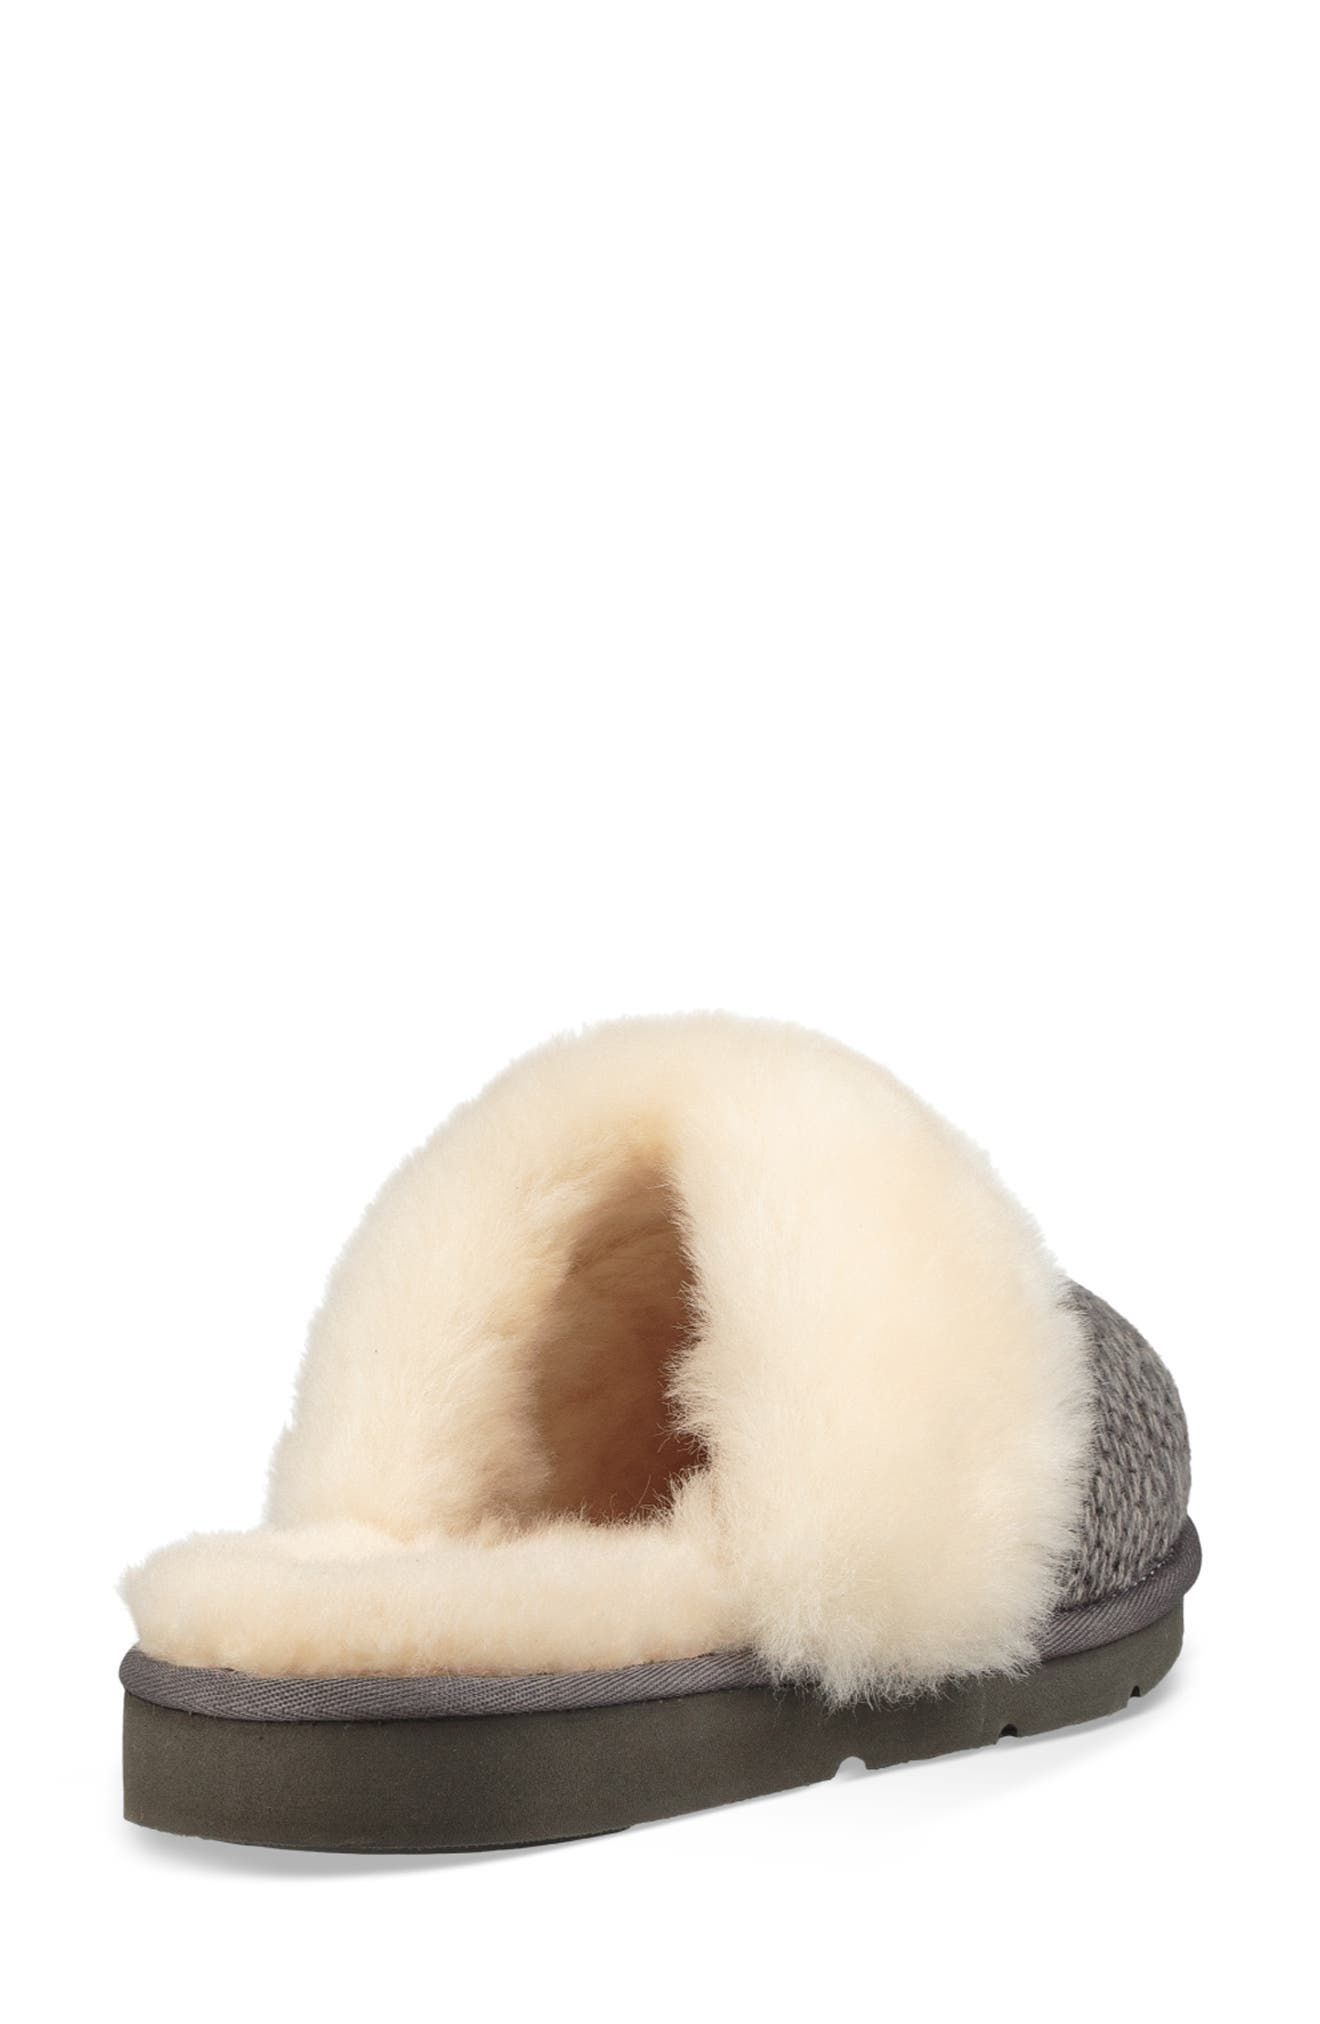 Cozy Knit Genuine Shearling Slipper,                             Alternate thumbnail 2, color,                             CHARCOAL